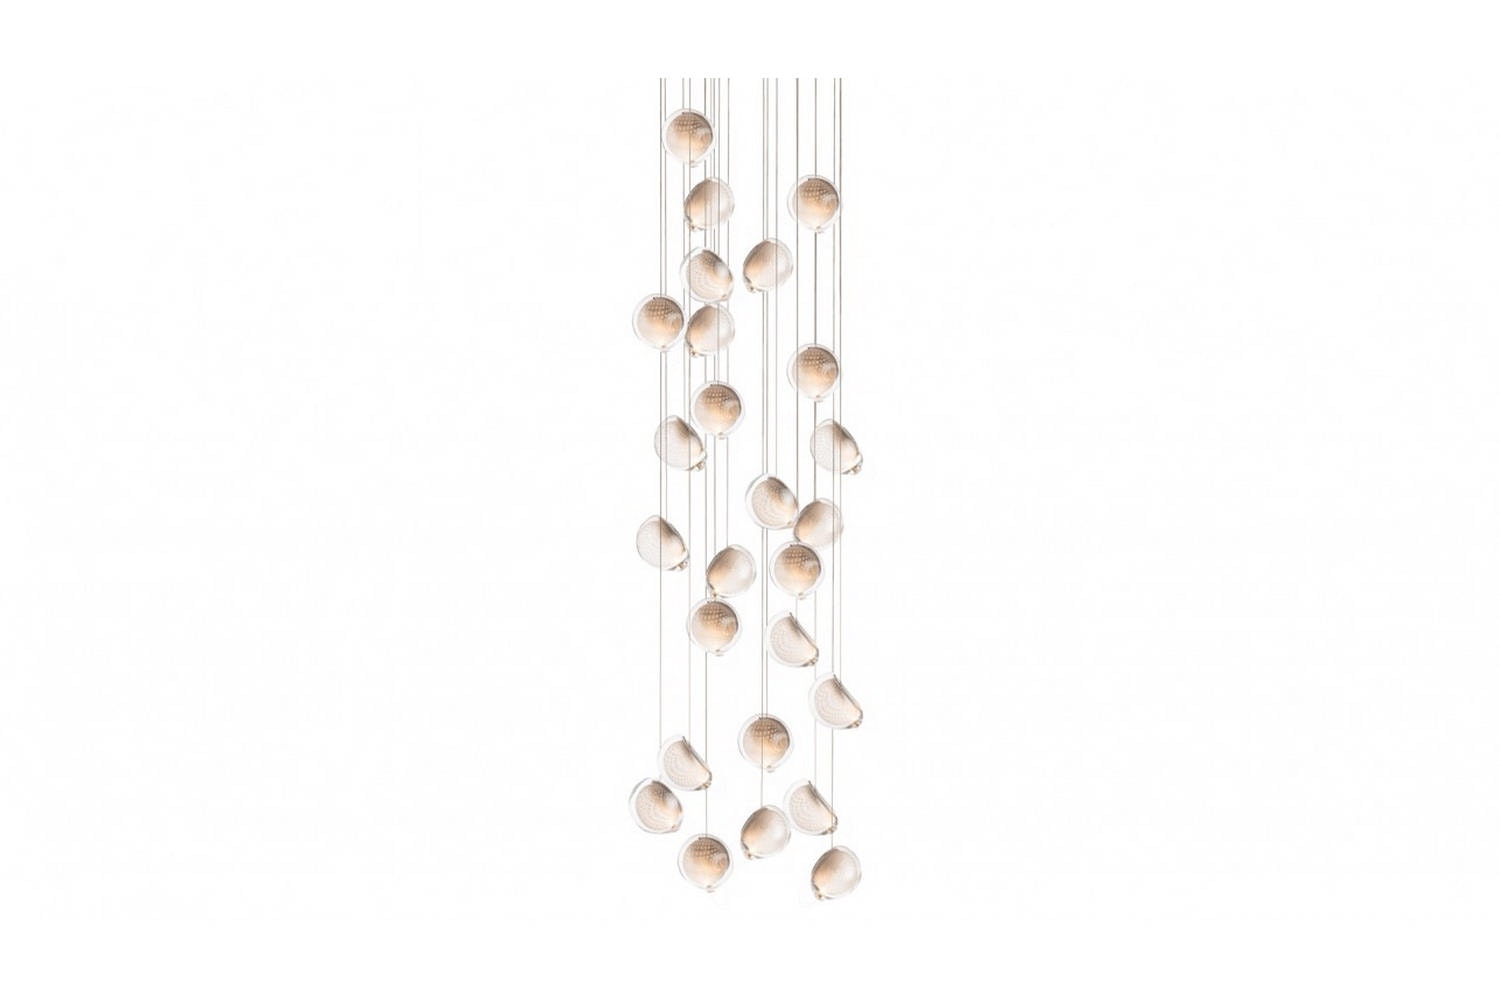 76.26 Suspension Lamp by Omer Arbel for Bocci